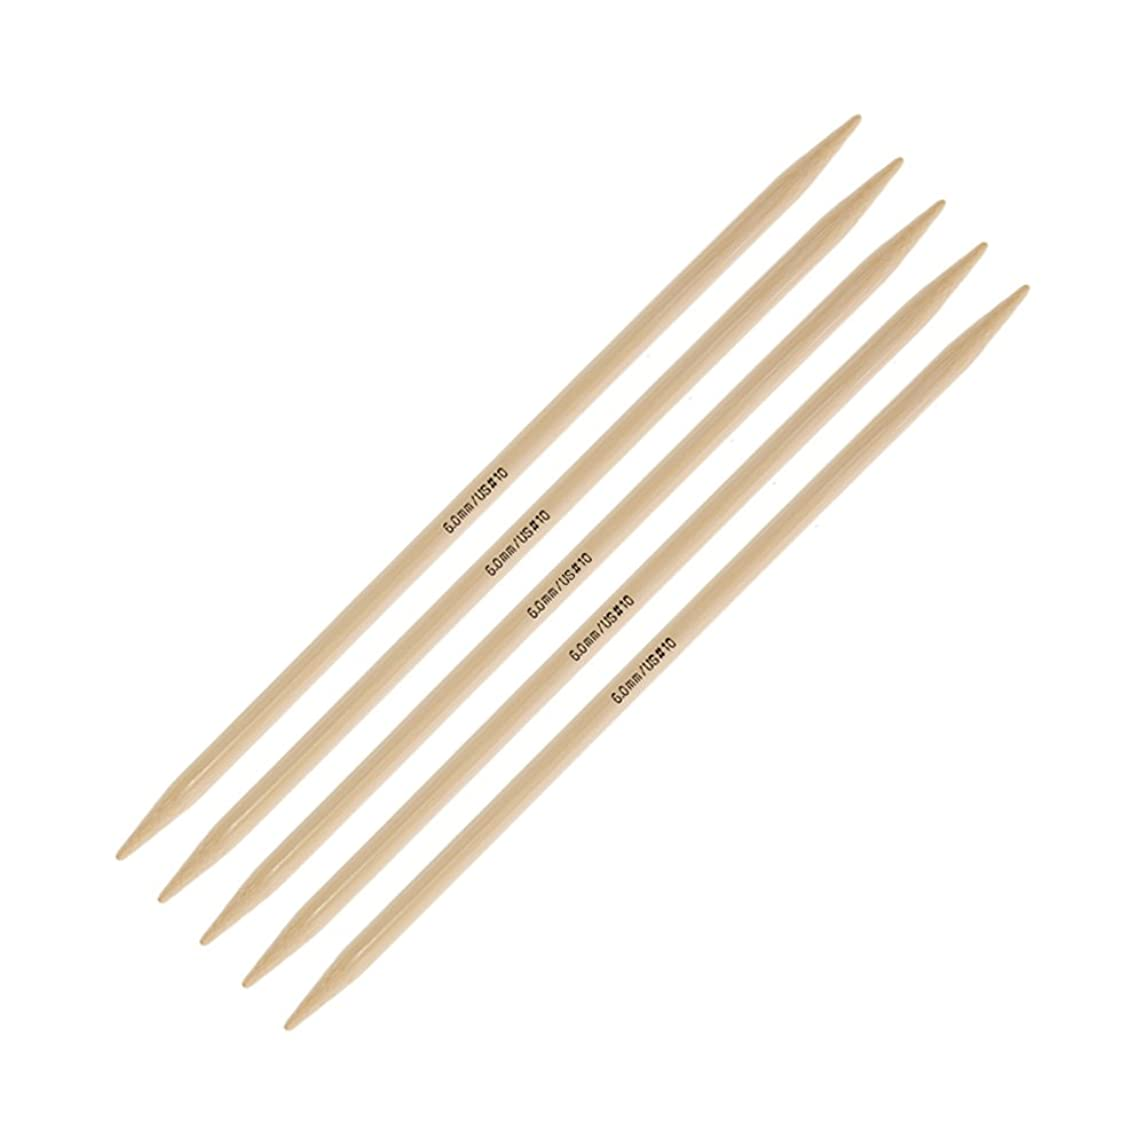 addi Knitting Needle Double Pointed Natura Bamboo 8 inch (20cm) (Set of 5) Size US 10 (6.0mm)